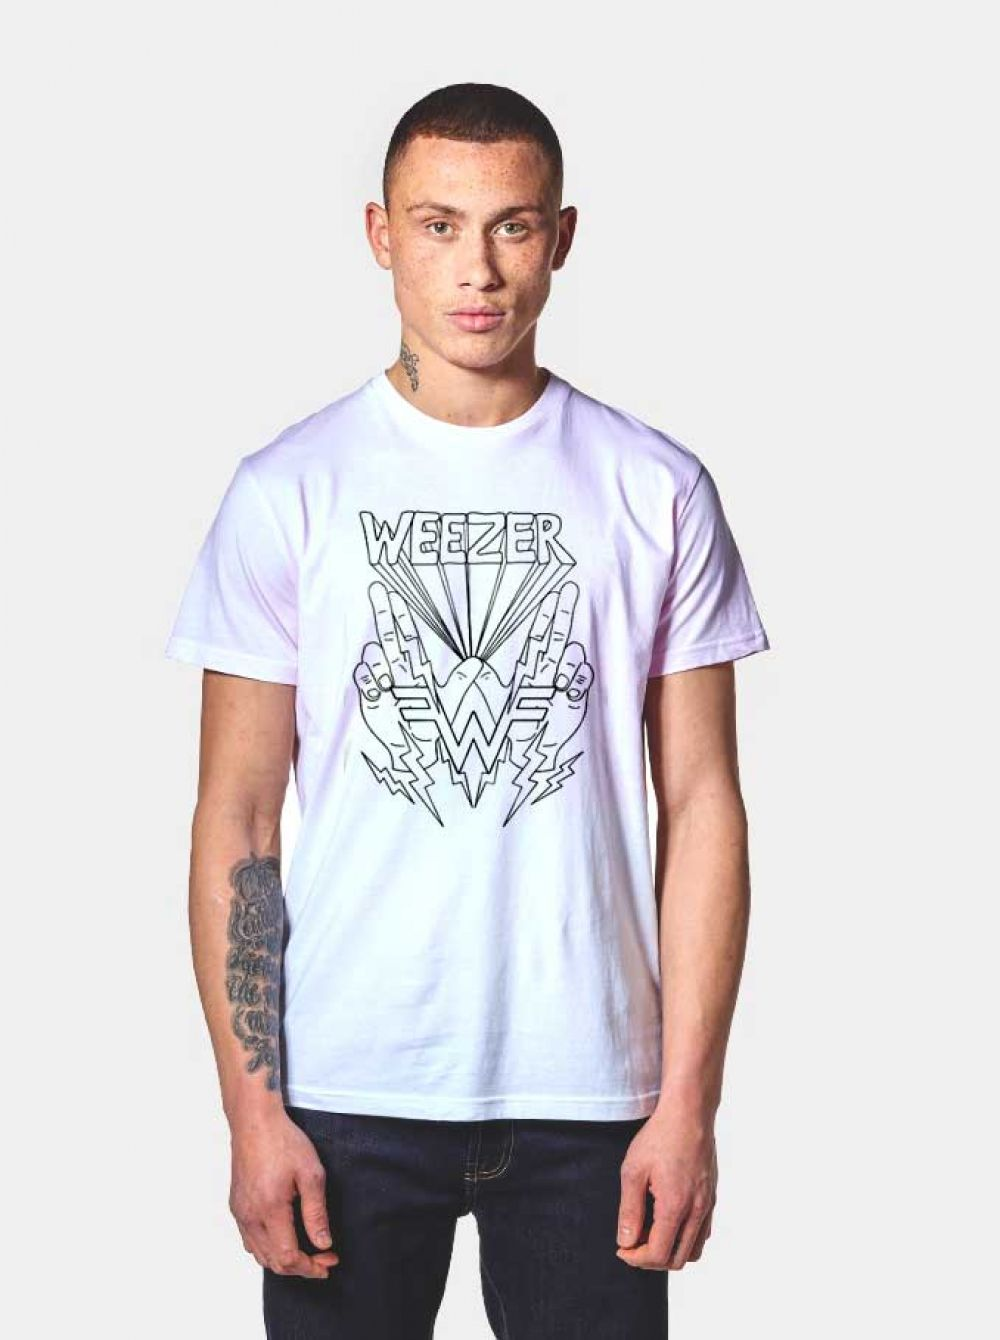 6dc39606 Weezer Lightning Hands T Shirt $ 14.50 #Tee #Hype #Outfits #Outfit  #Hypebeast #fashion #shirt #Tees #Tops #Teen